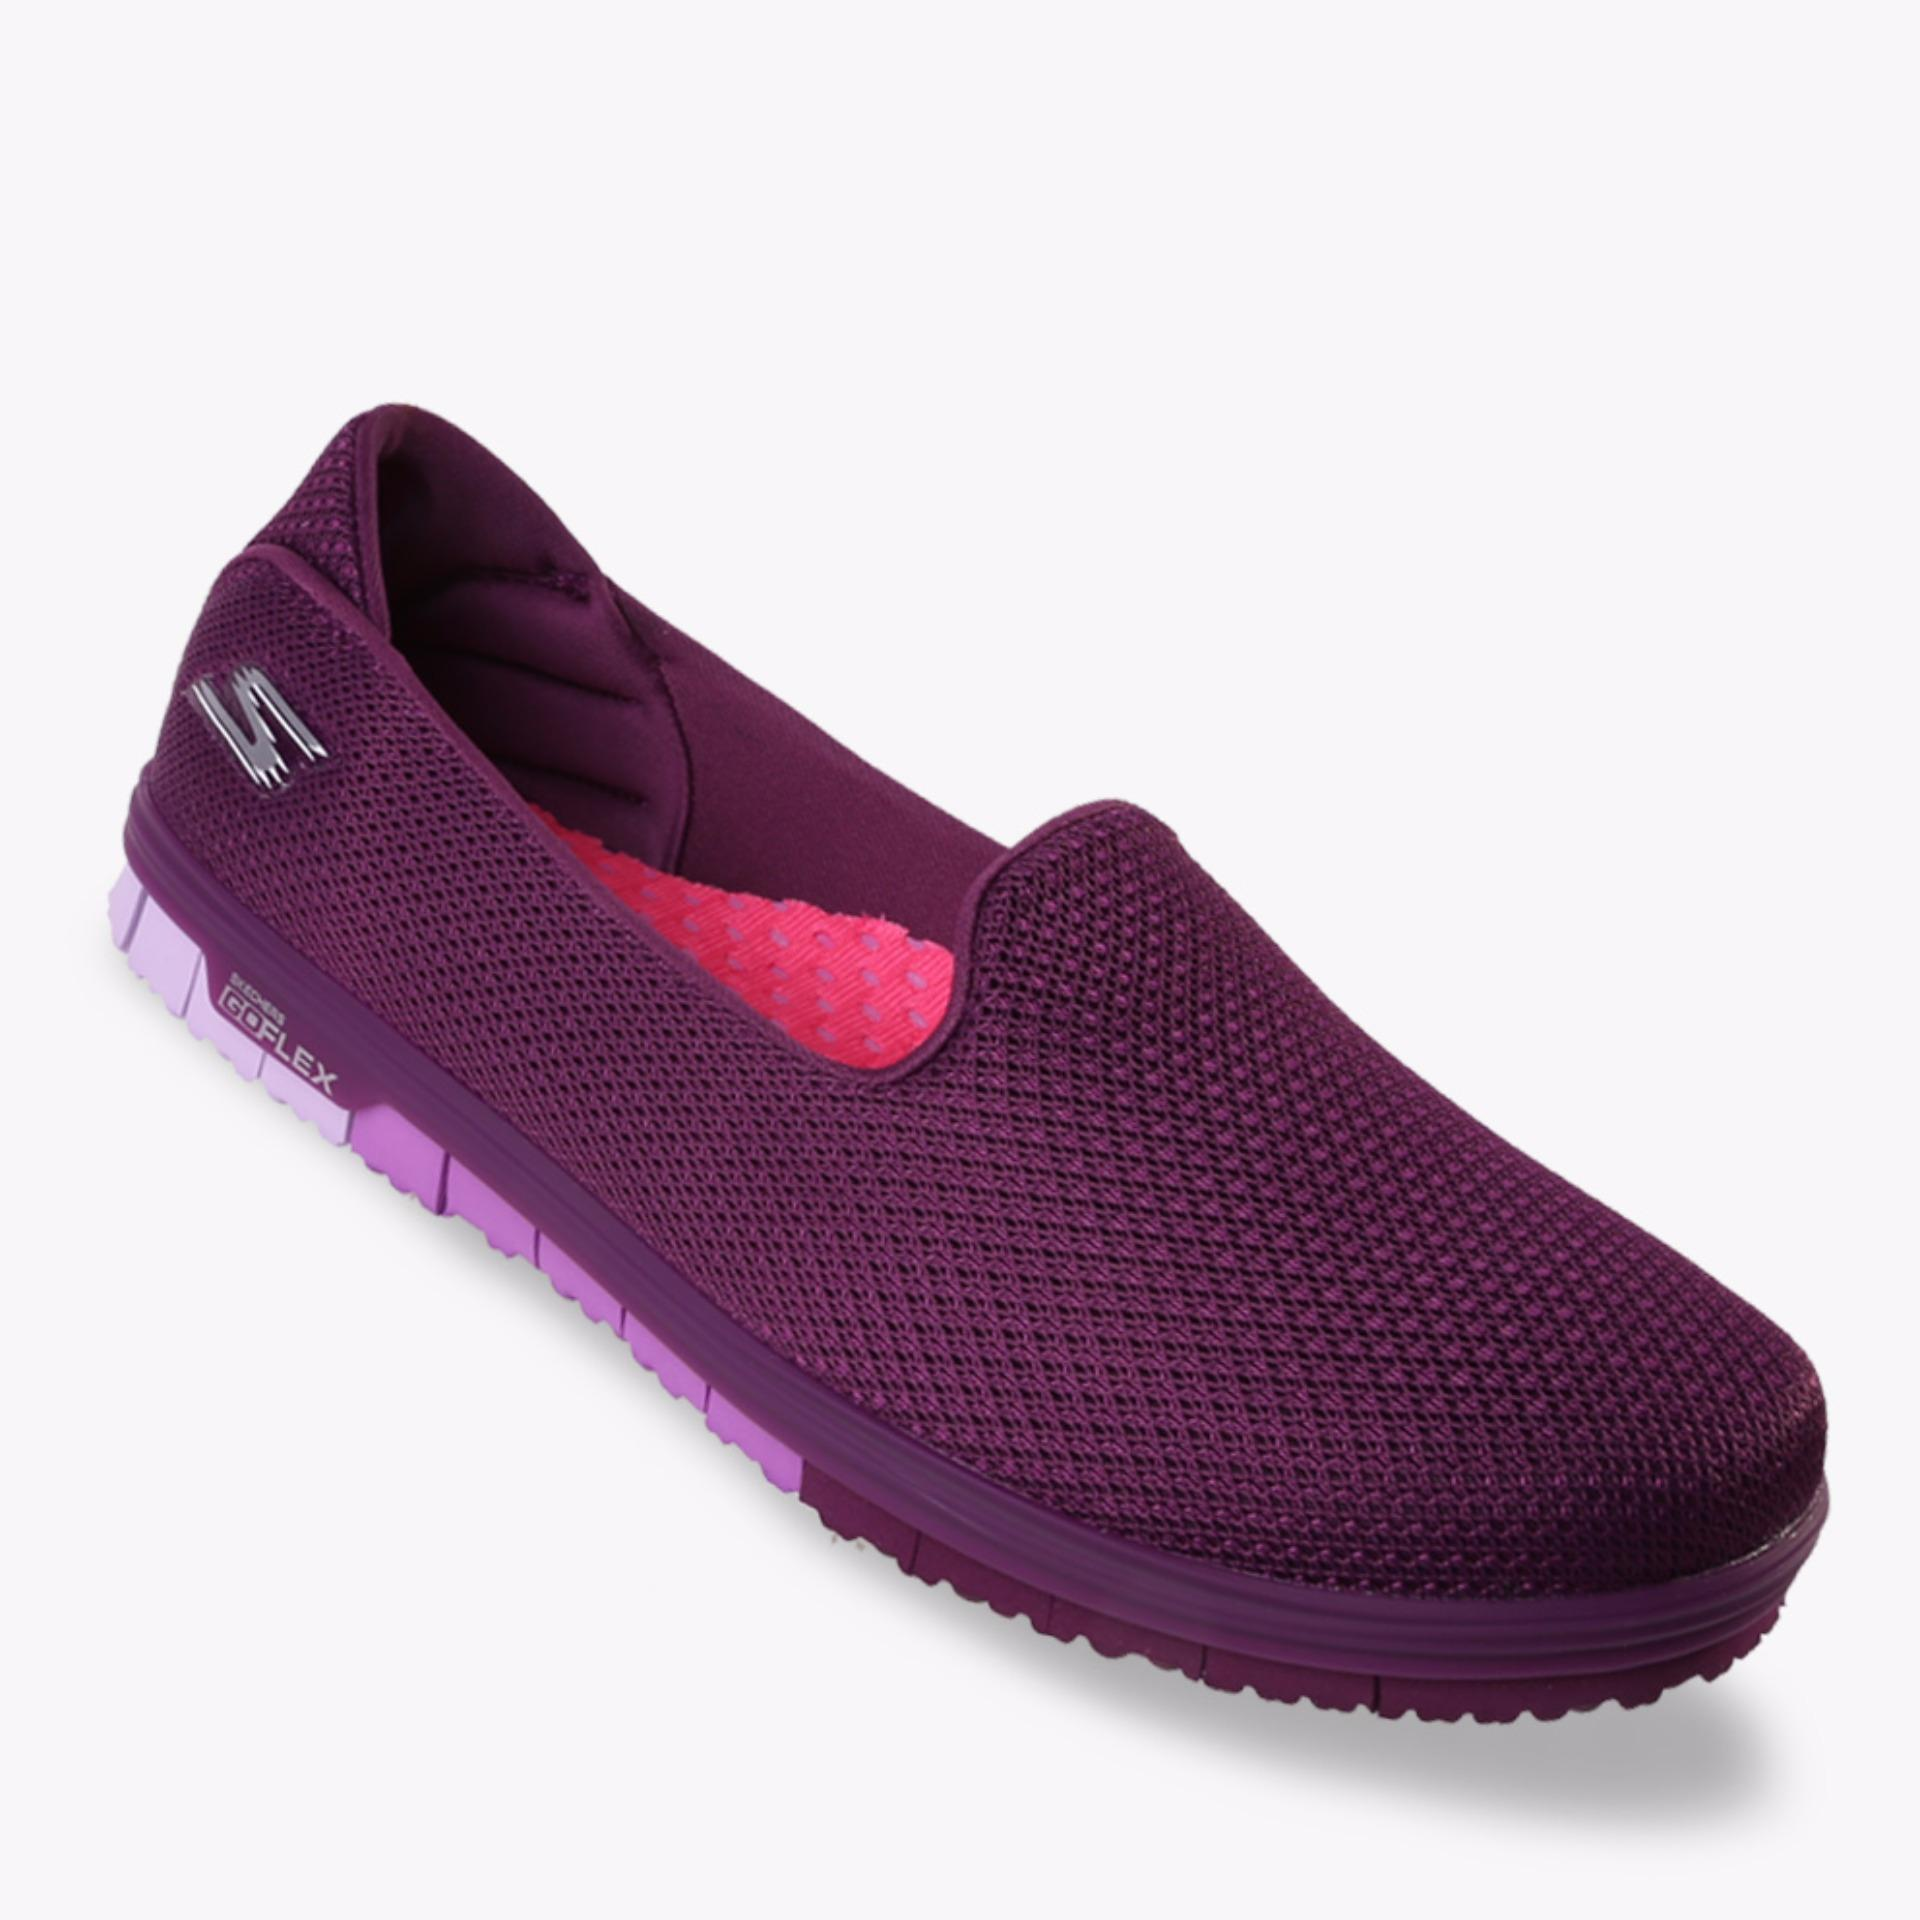 Beli Skechers Go Mini Flex Walk Women S Slip On Ungu Skechers Asli